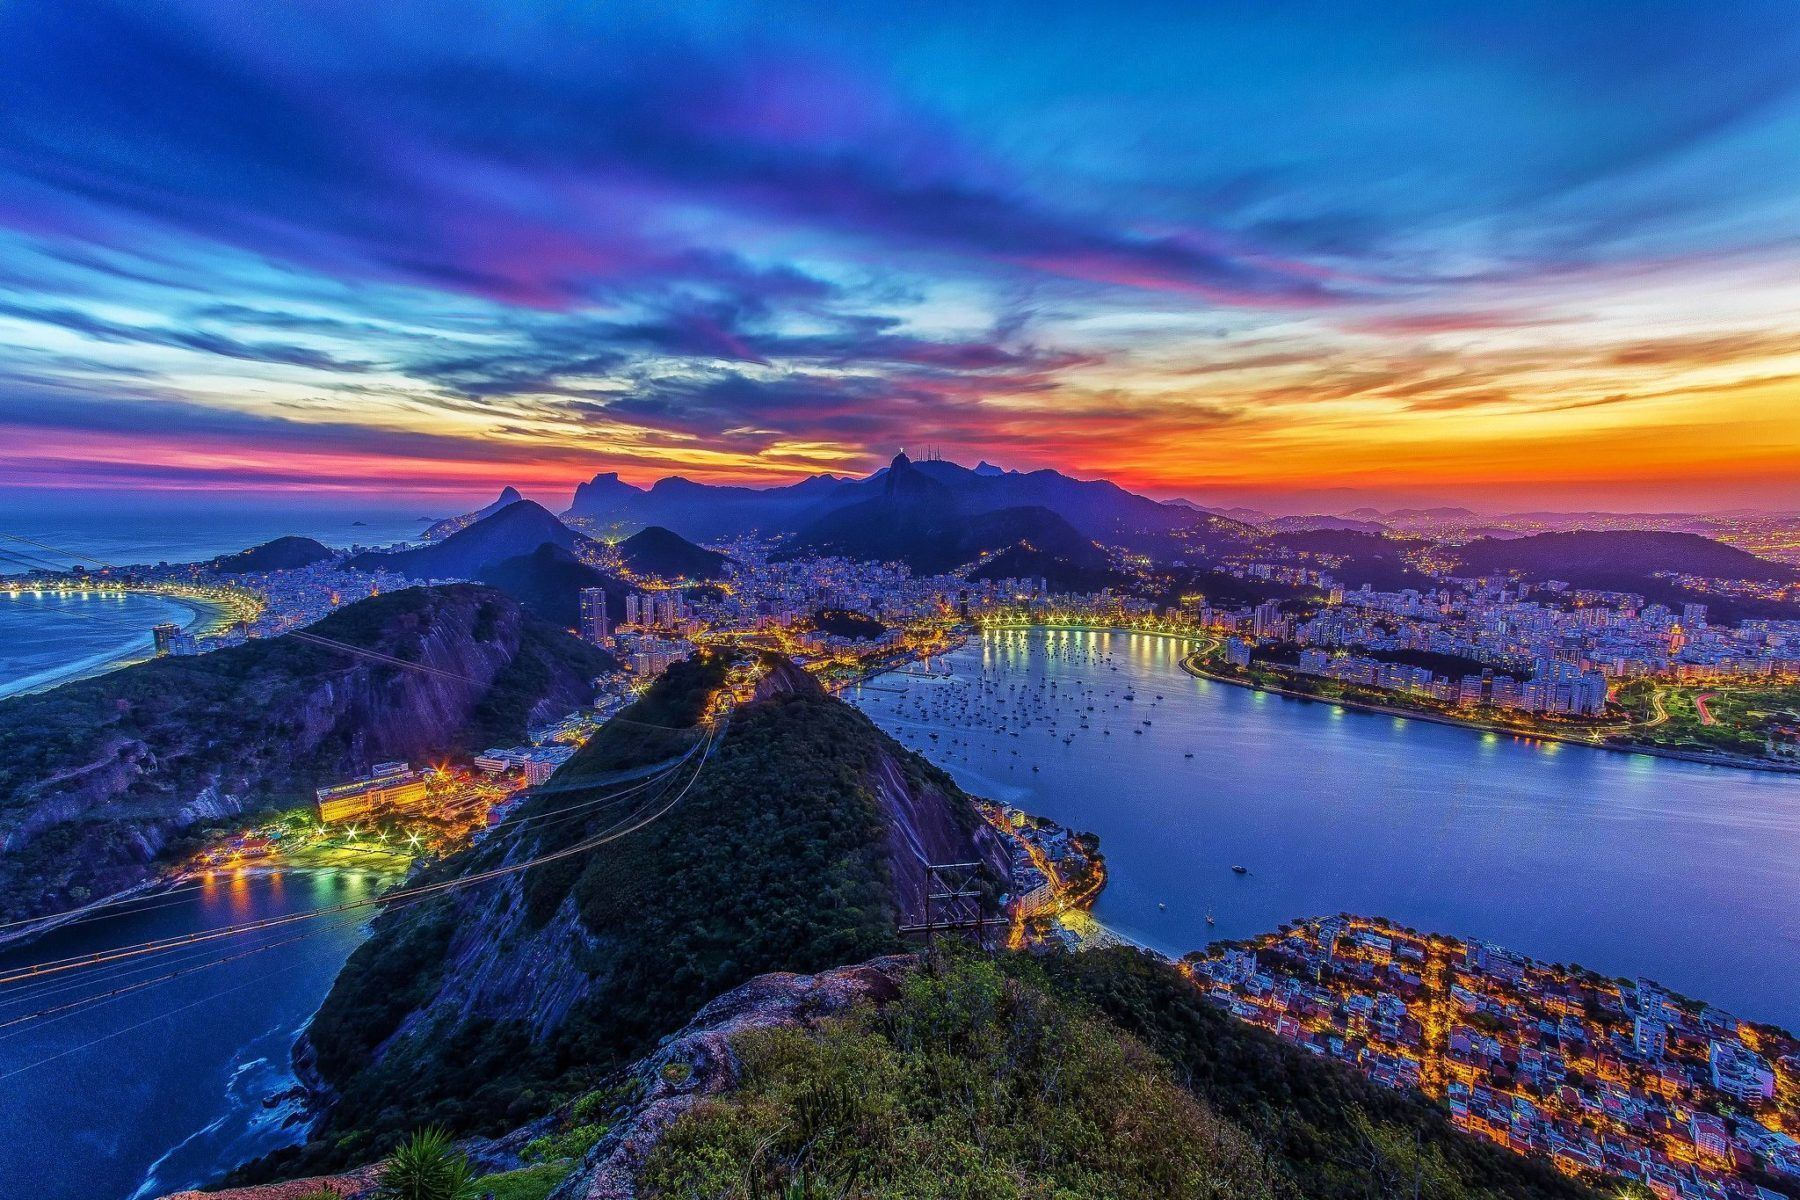 Sunset Experience - Christ the redeemer, Sugarloaf & Old Rio